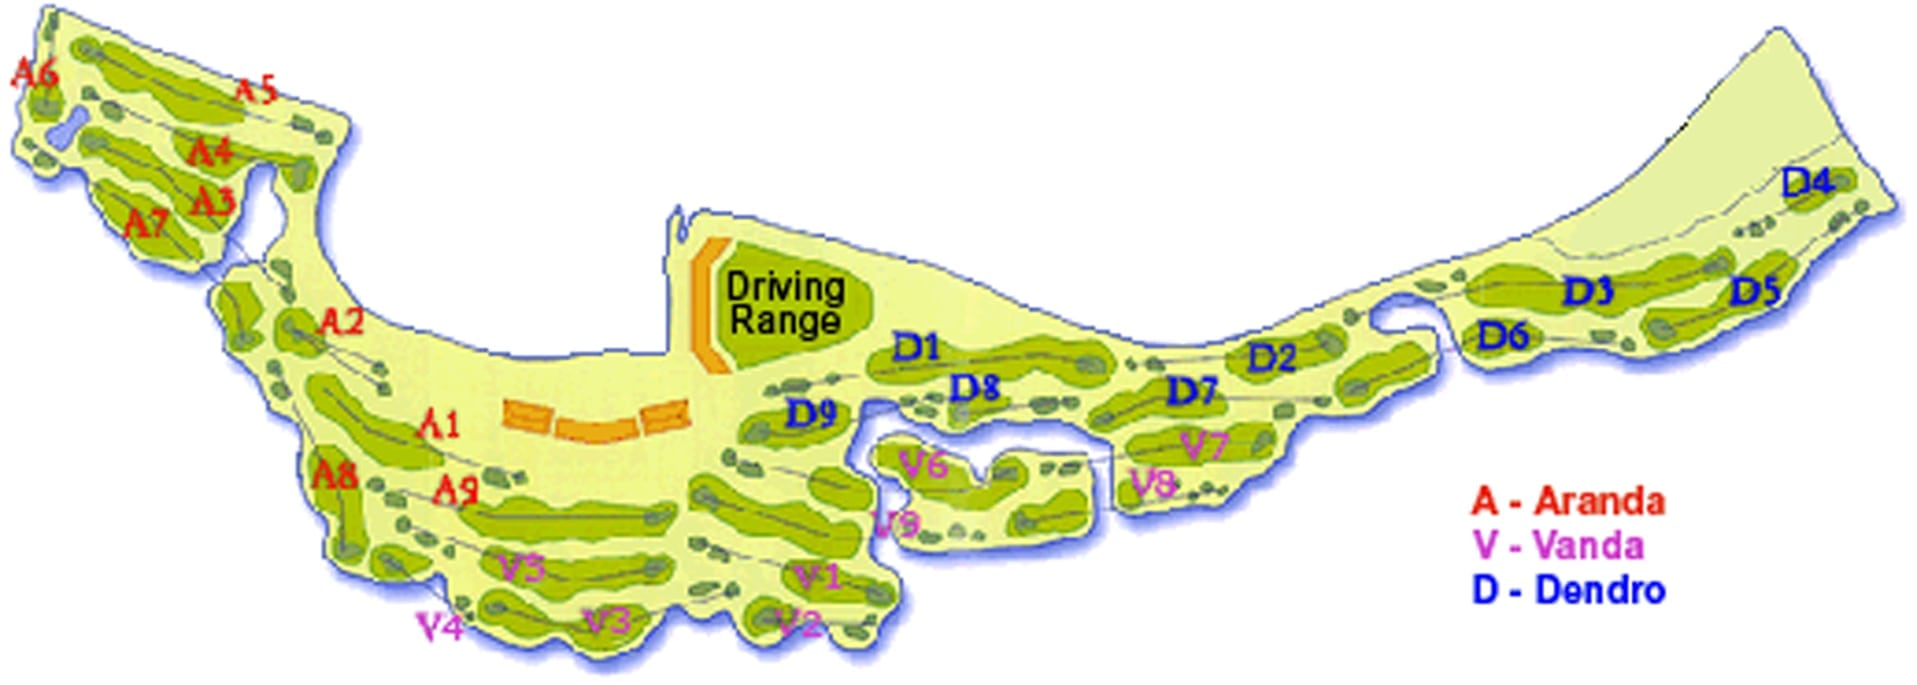 Map of Orchid Country Club golf course Singapore